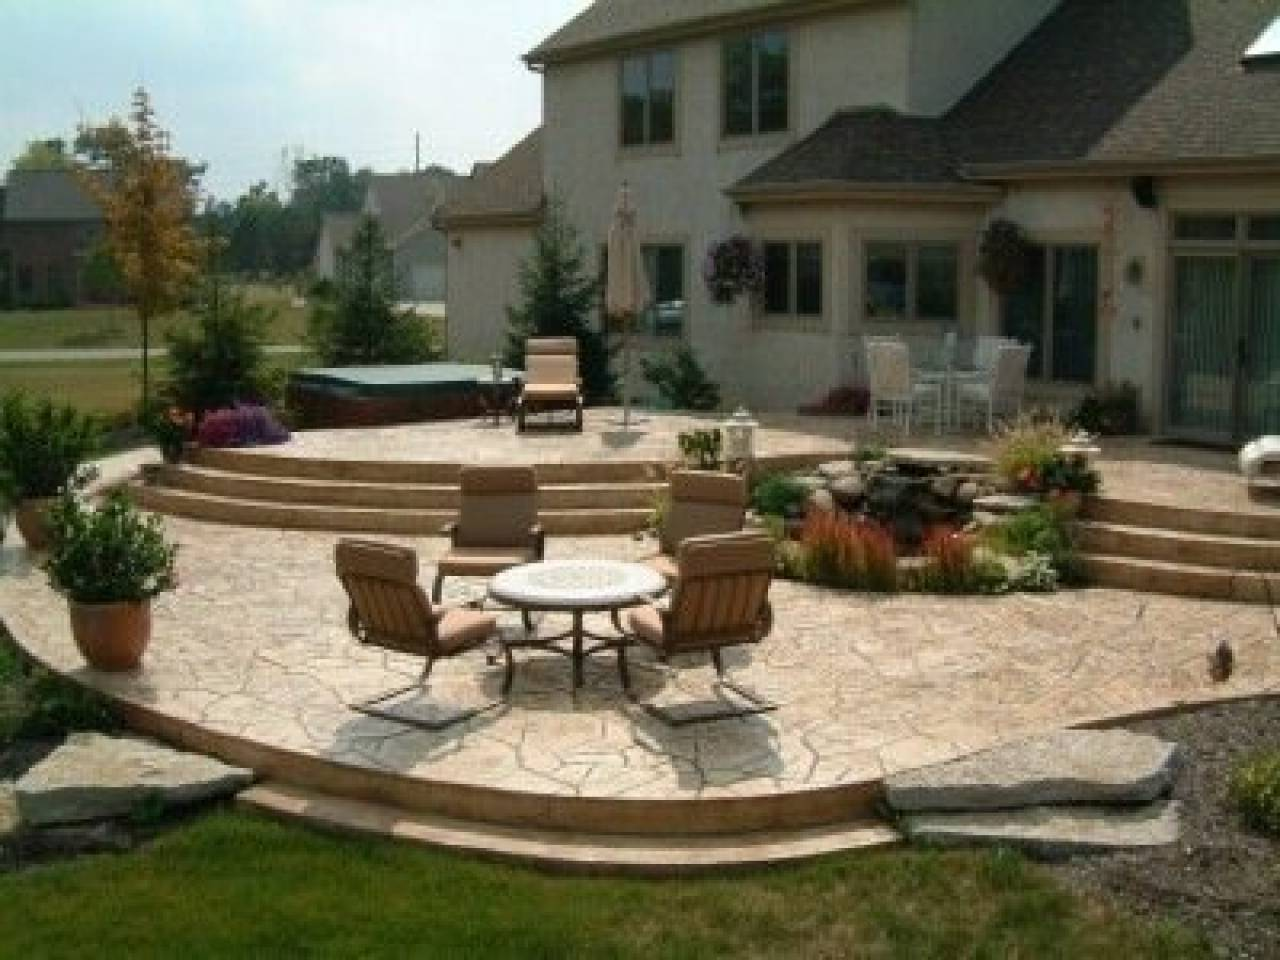 Tiered Patio Designs Stamped Concrete - House Plans | #173461 on Raised Concrete Patio Ideas id=11214